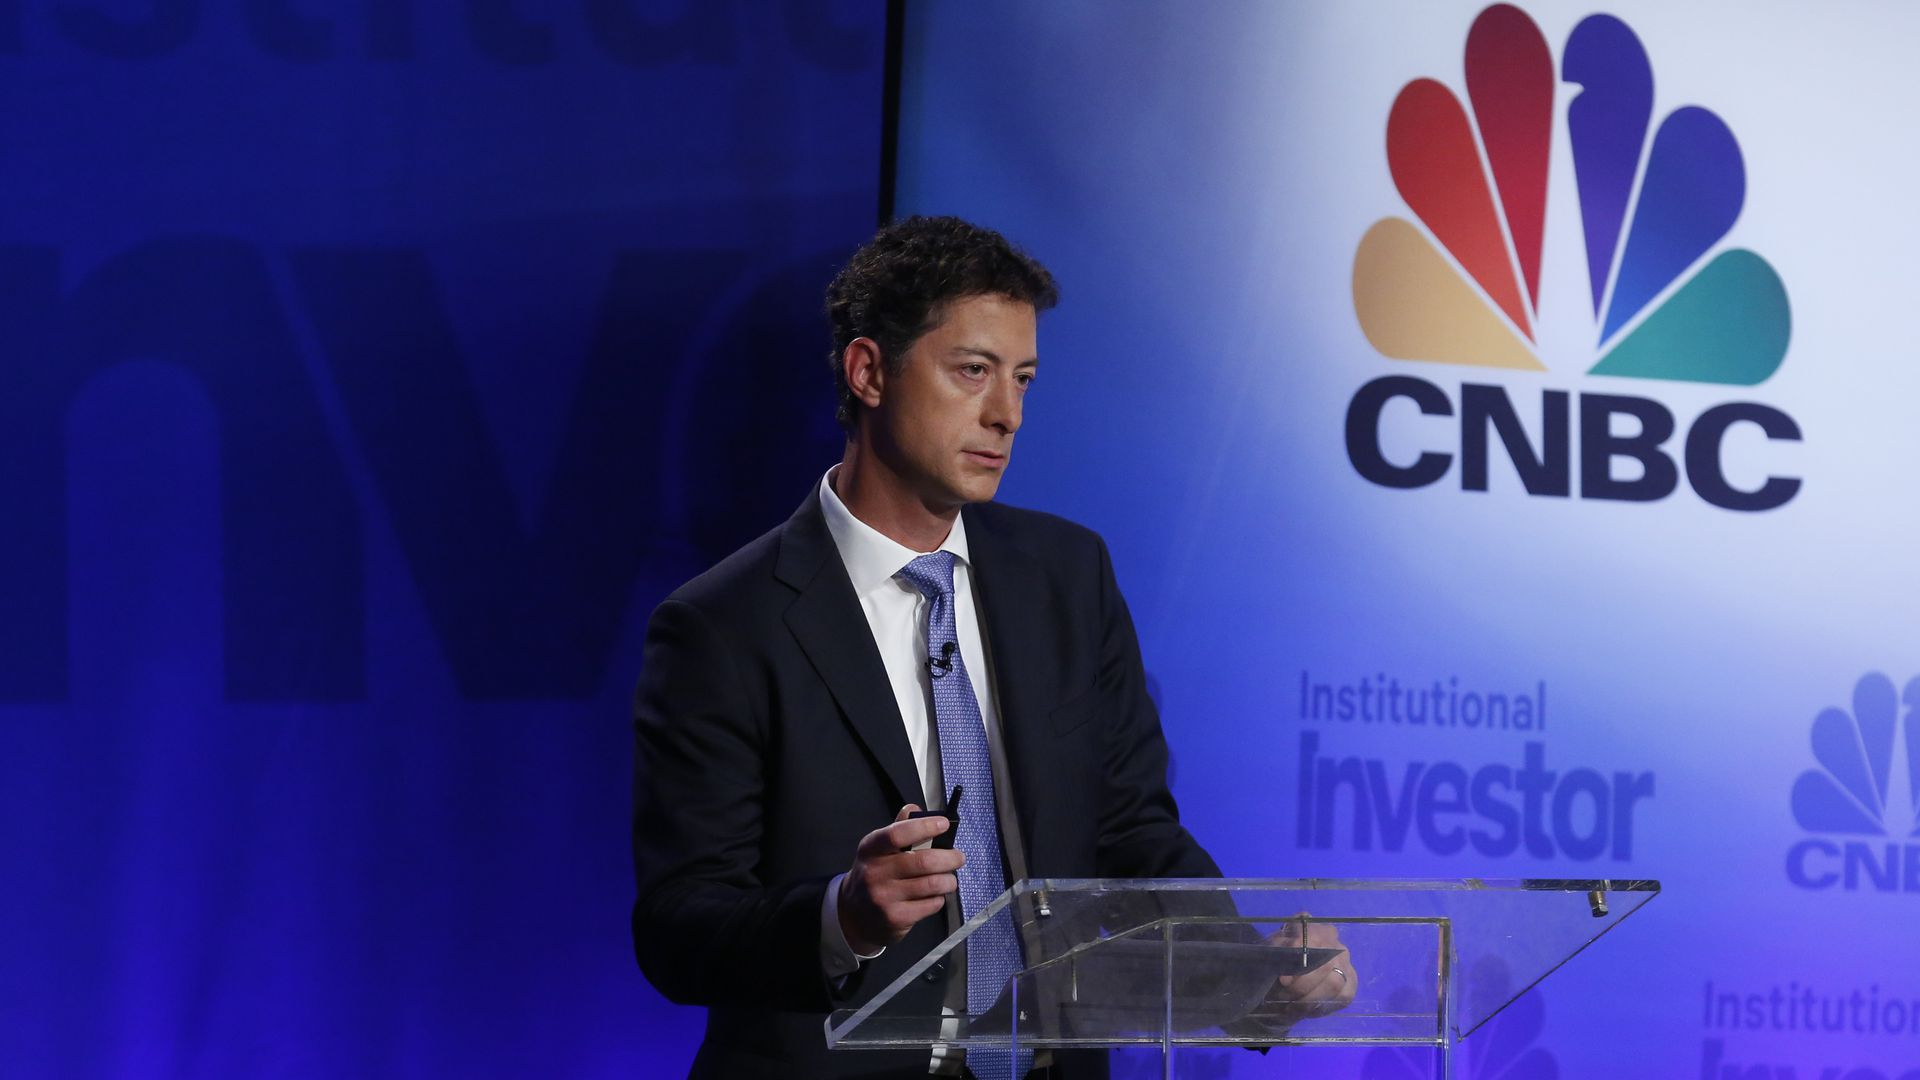 Jeffrey Smith, CEO of Starboard Value LP, speaks at the 5th annual CNBC Institutional Investor Delivering Alpha Conference on Wednesday, July 15, 2015.